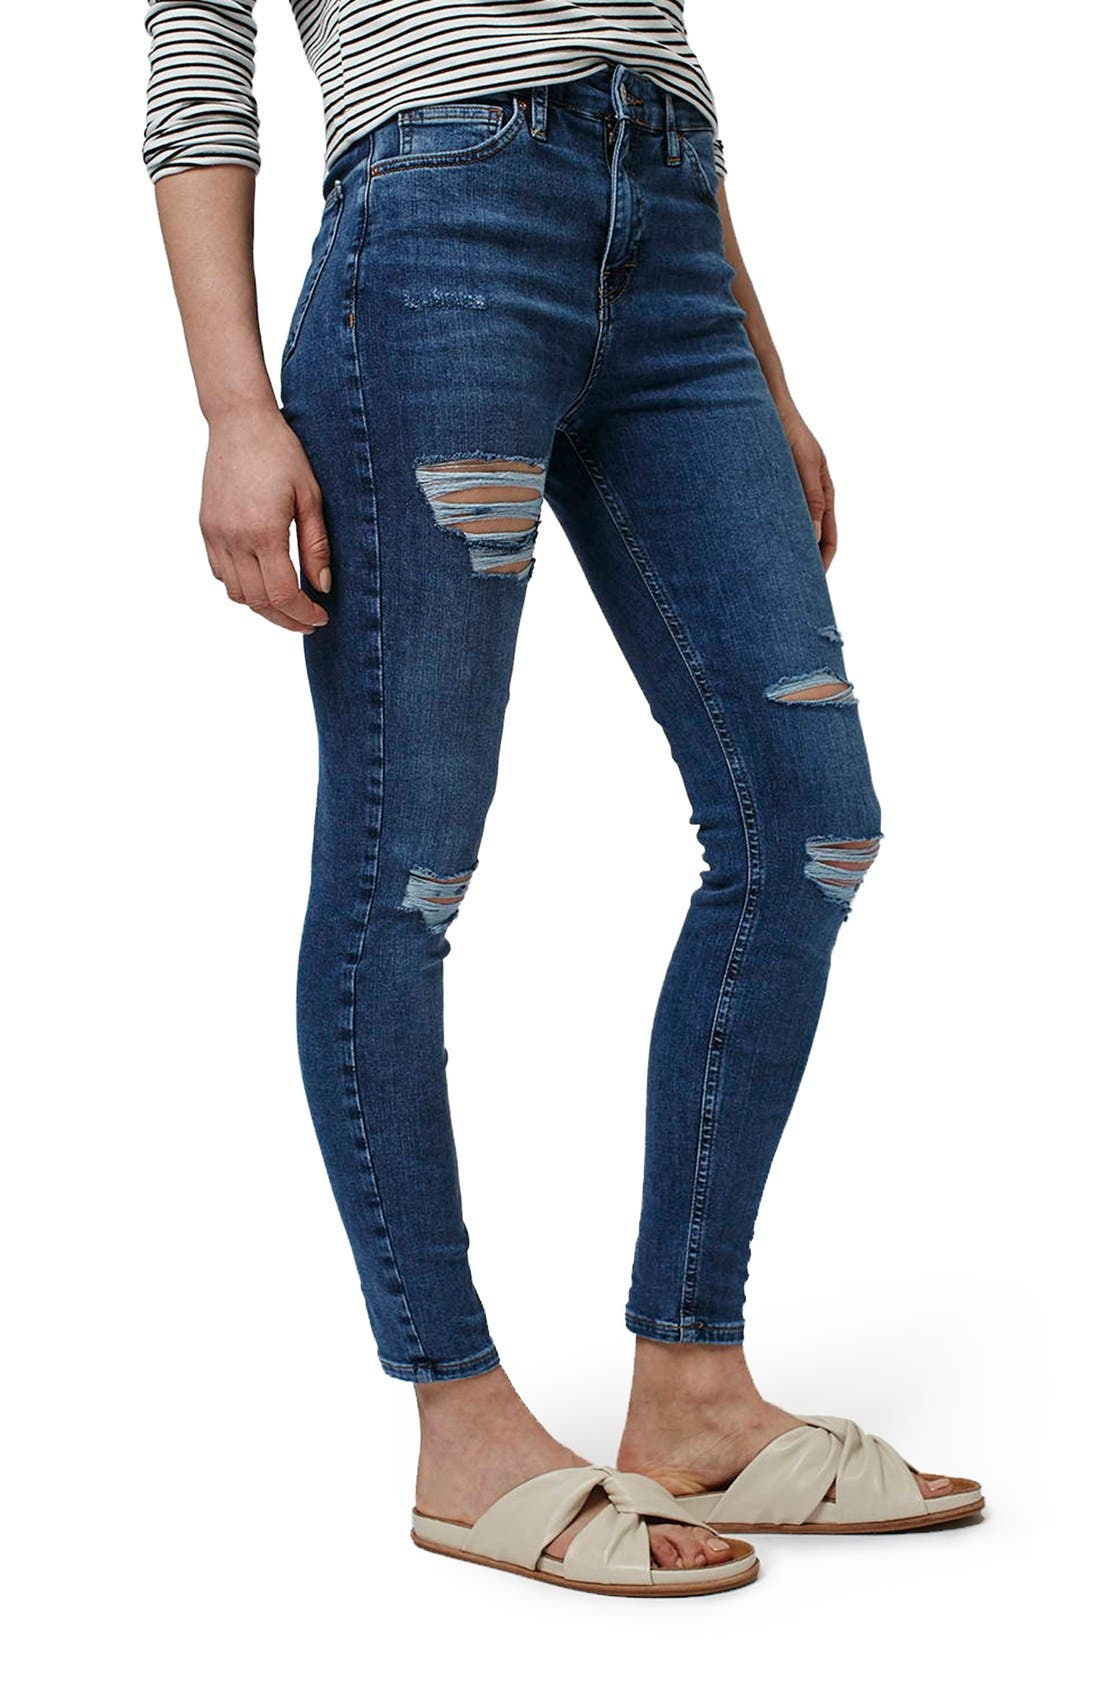 Alternate Image 1 Selected - Topshop Moto 'Jamie' Super Ripped Skinny Jeans